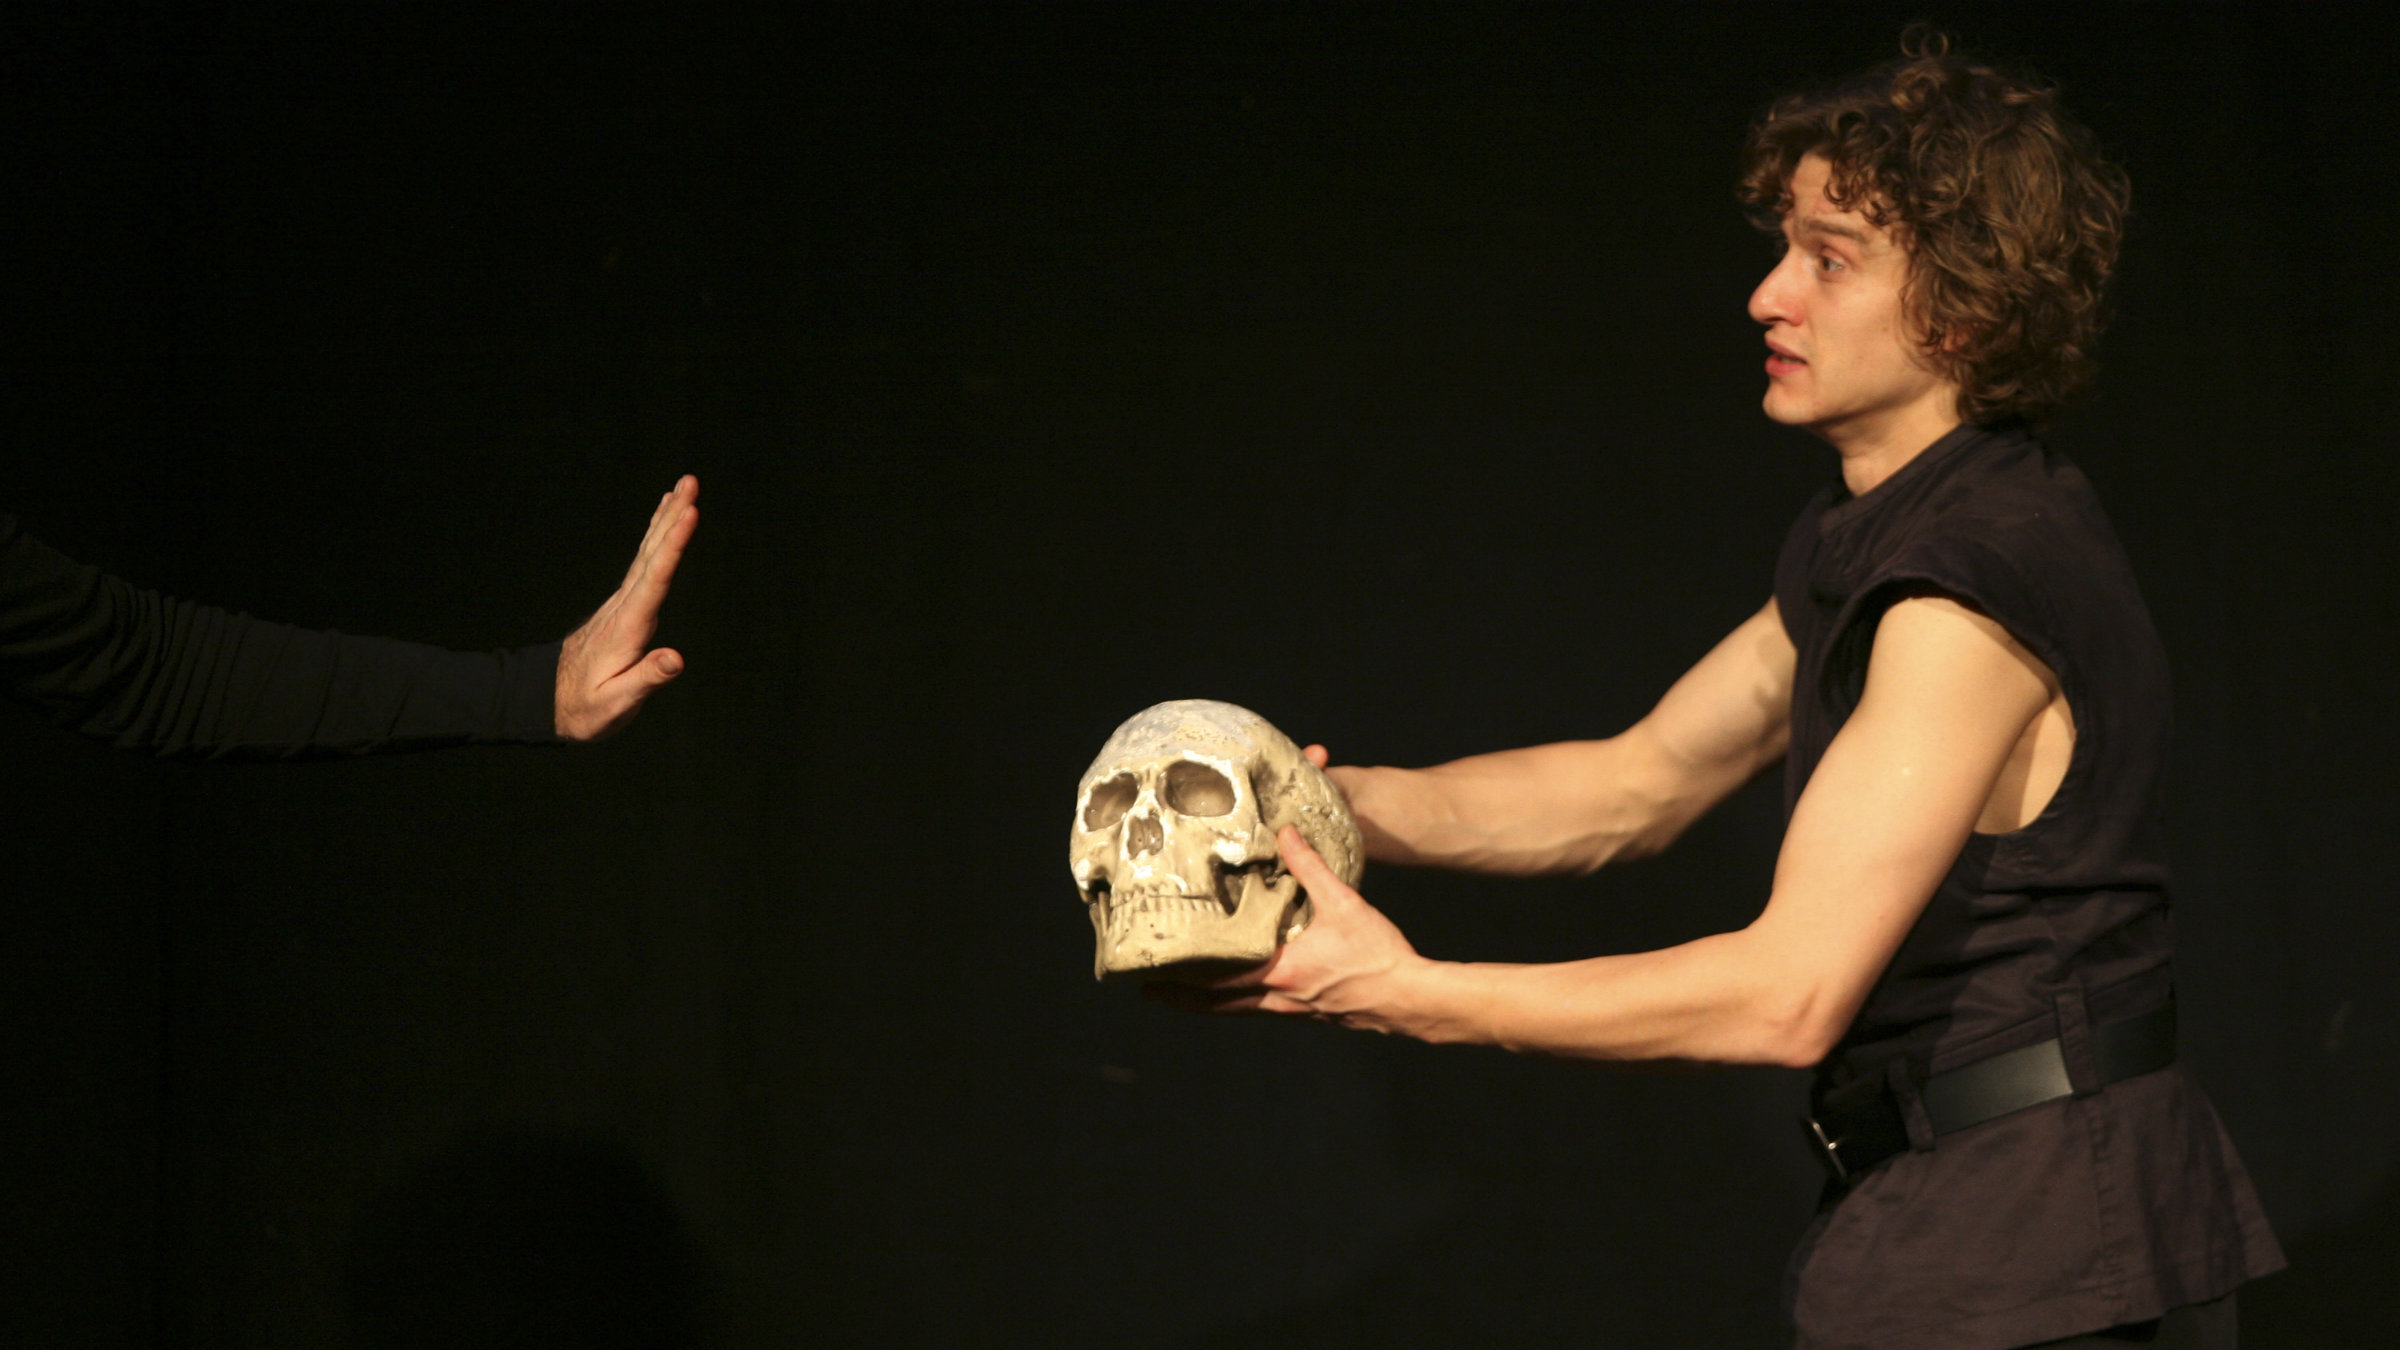 Alas, poor Yorick: The British Library blocked him.